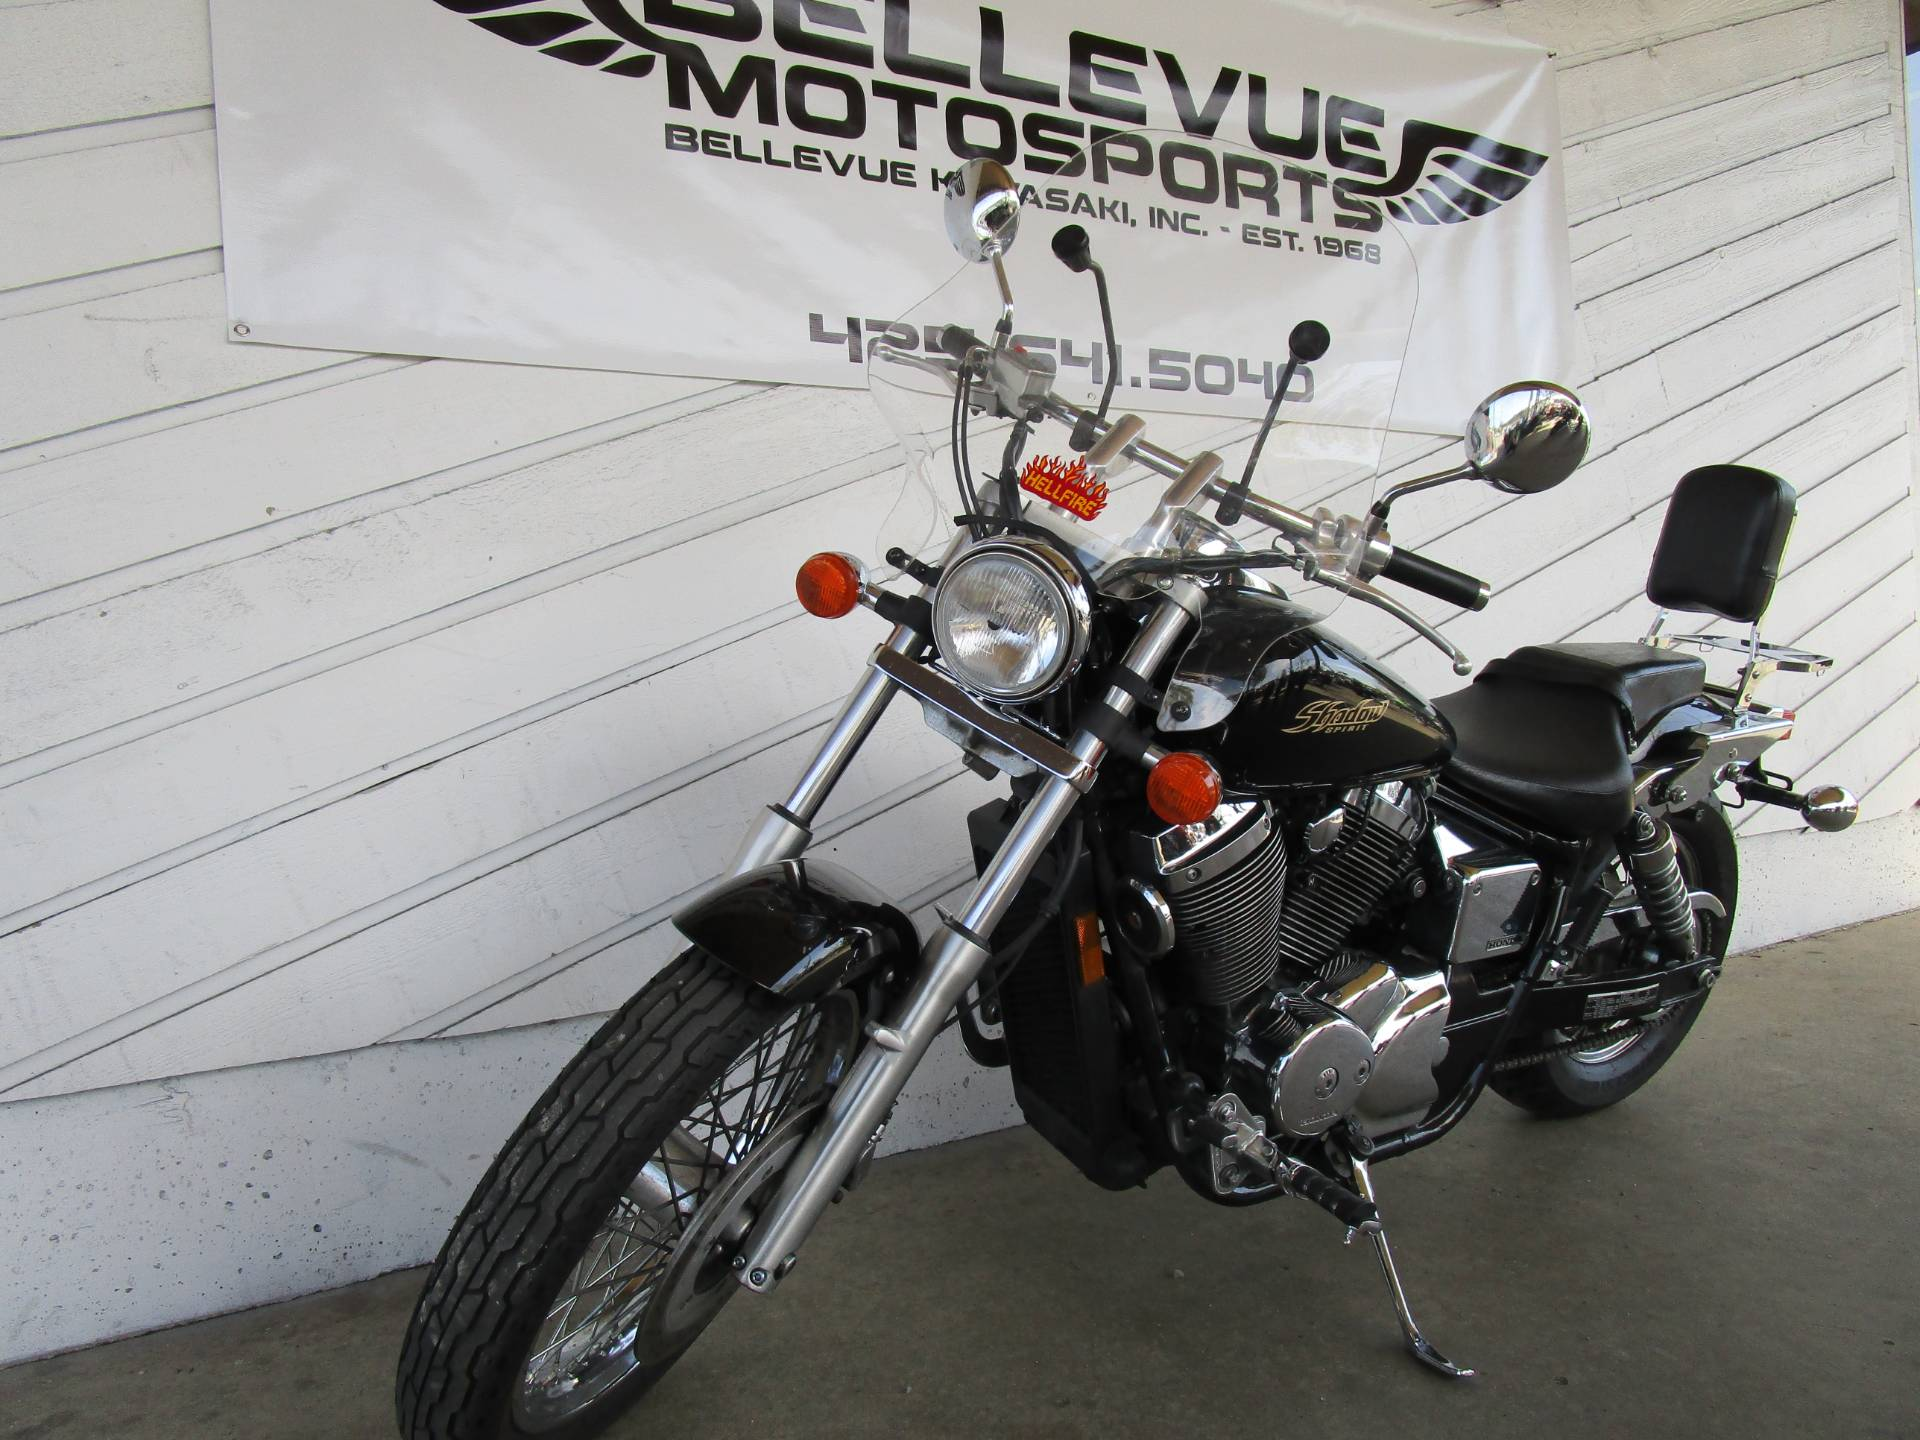 2003 Honda Shadow Spirit 750 in Bellevue, Washington